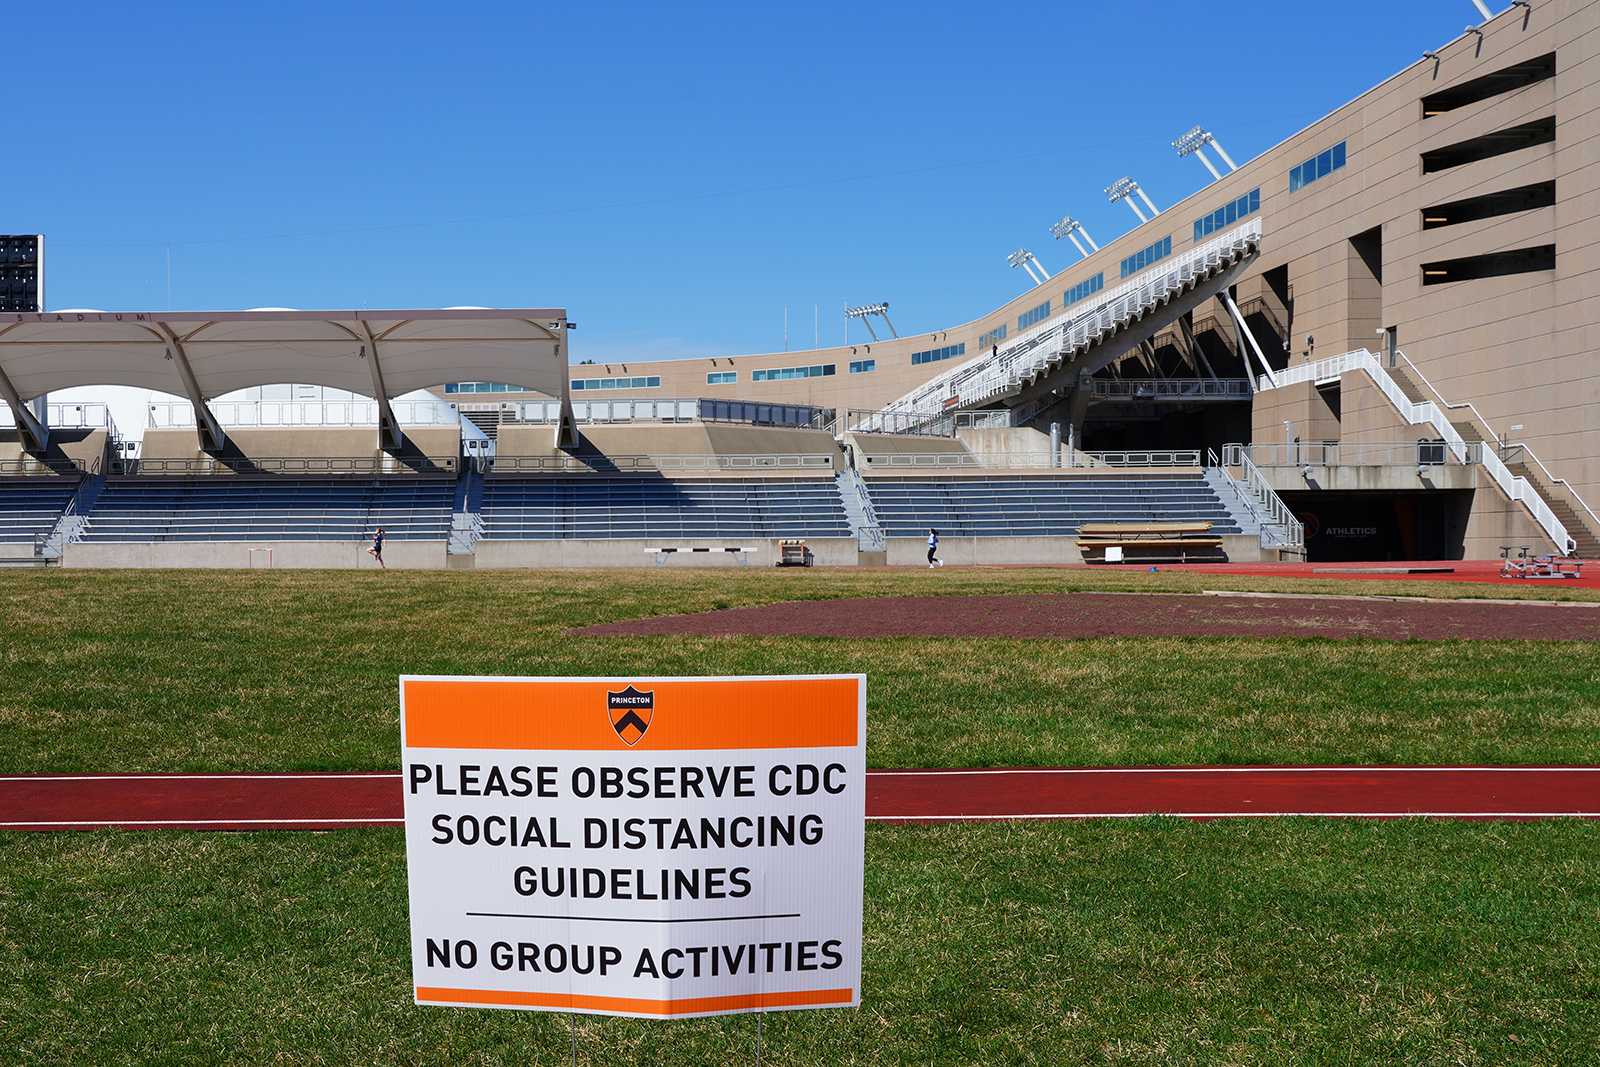 A sign warns the public about social distancing in the wake of Covid-19 on the campus of Princeton University, New Jersey, on March 26.